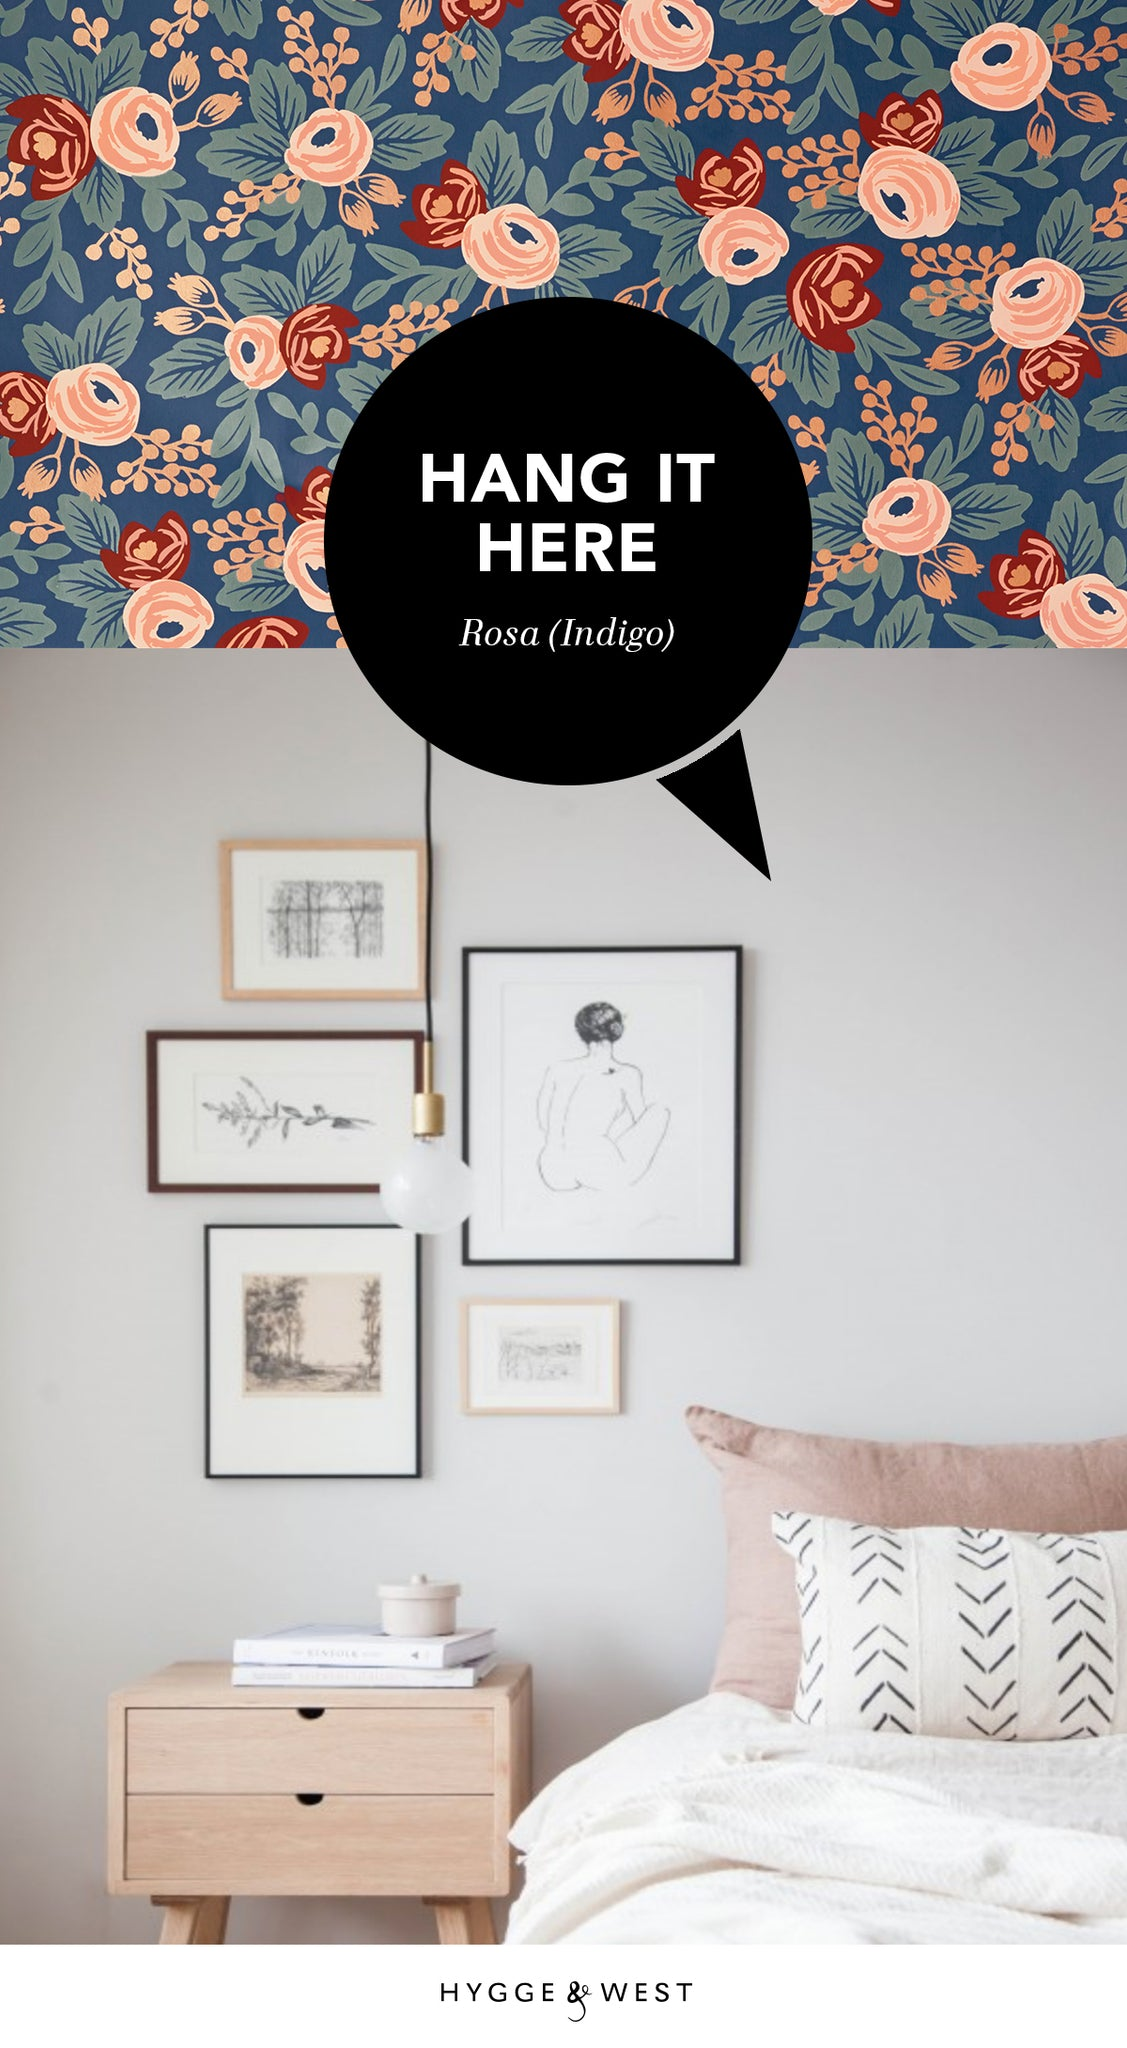 Hang It Here | Rosa (Indigo) designed by Rifle Paper Co